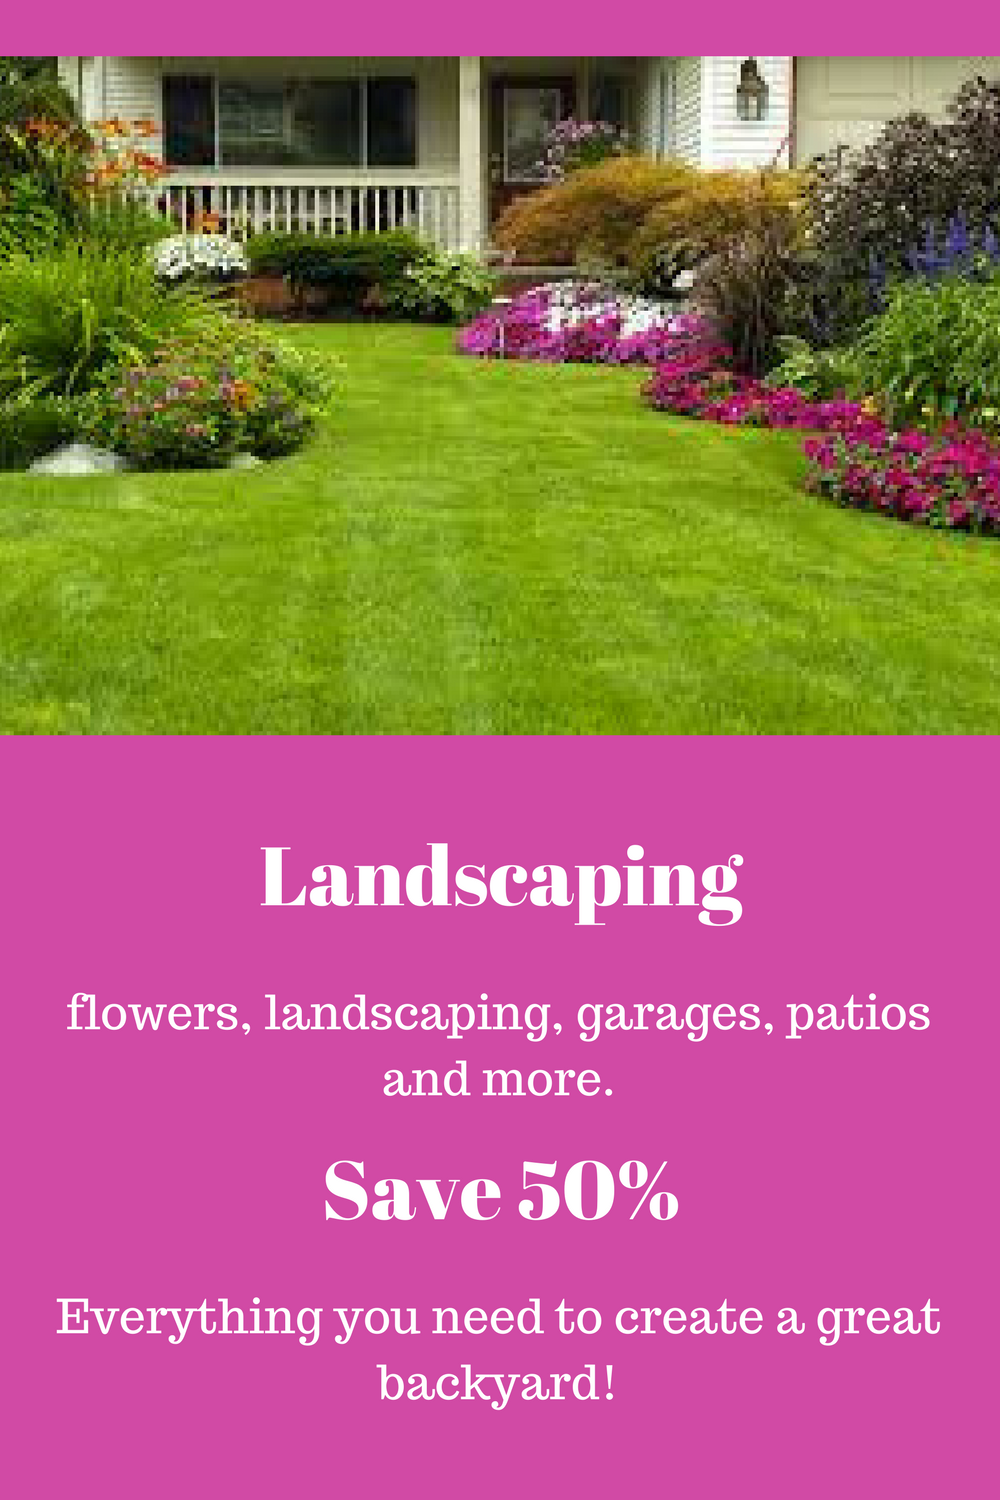 Garden decor ideas diy  Landscaping your yard Save  and DIY  Patio and Back Yard Decor